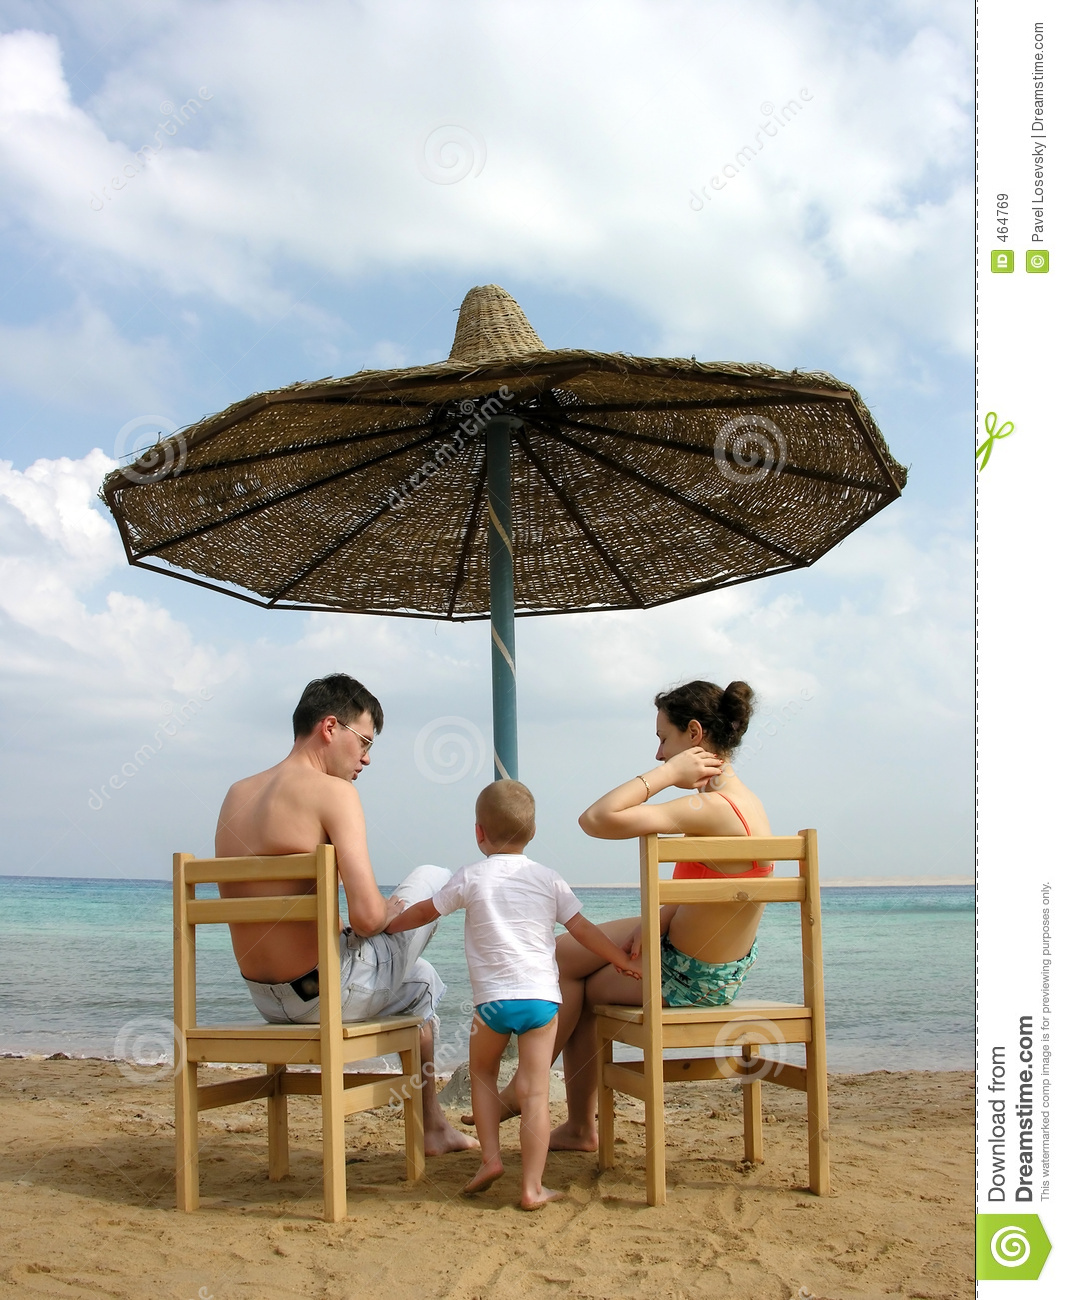 Family under umbrella on beach